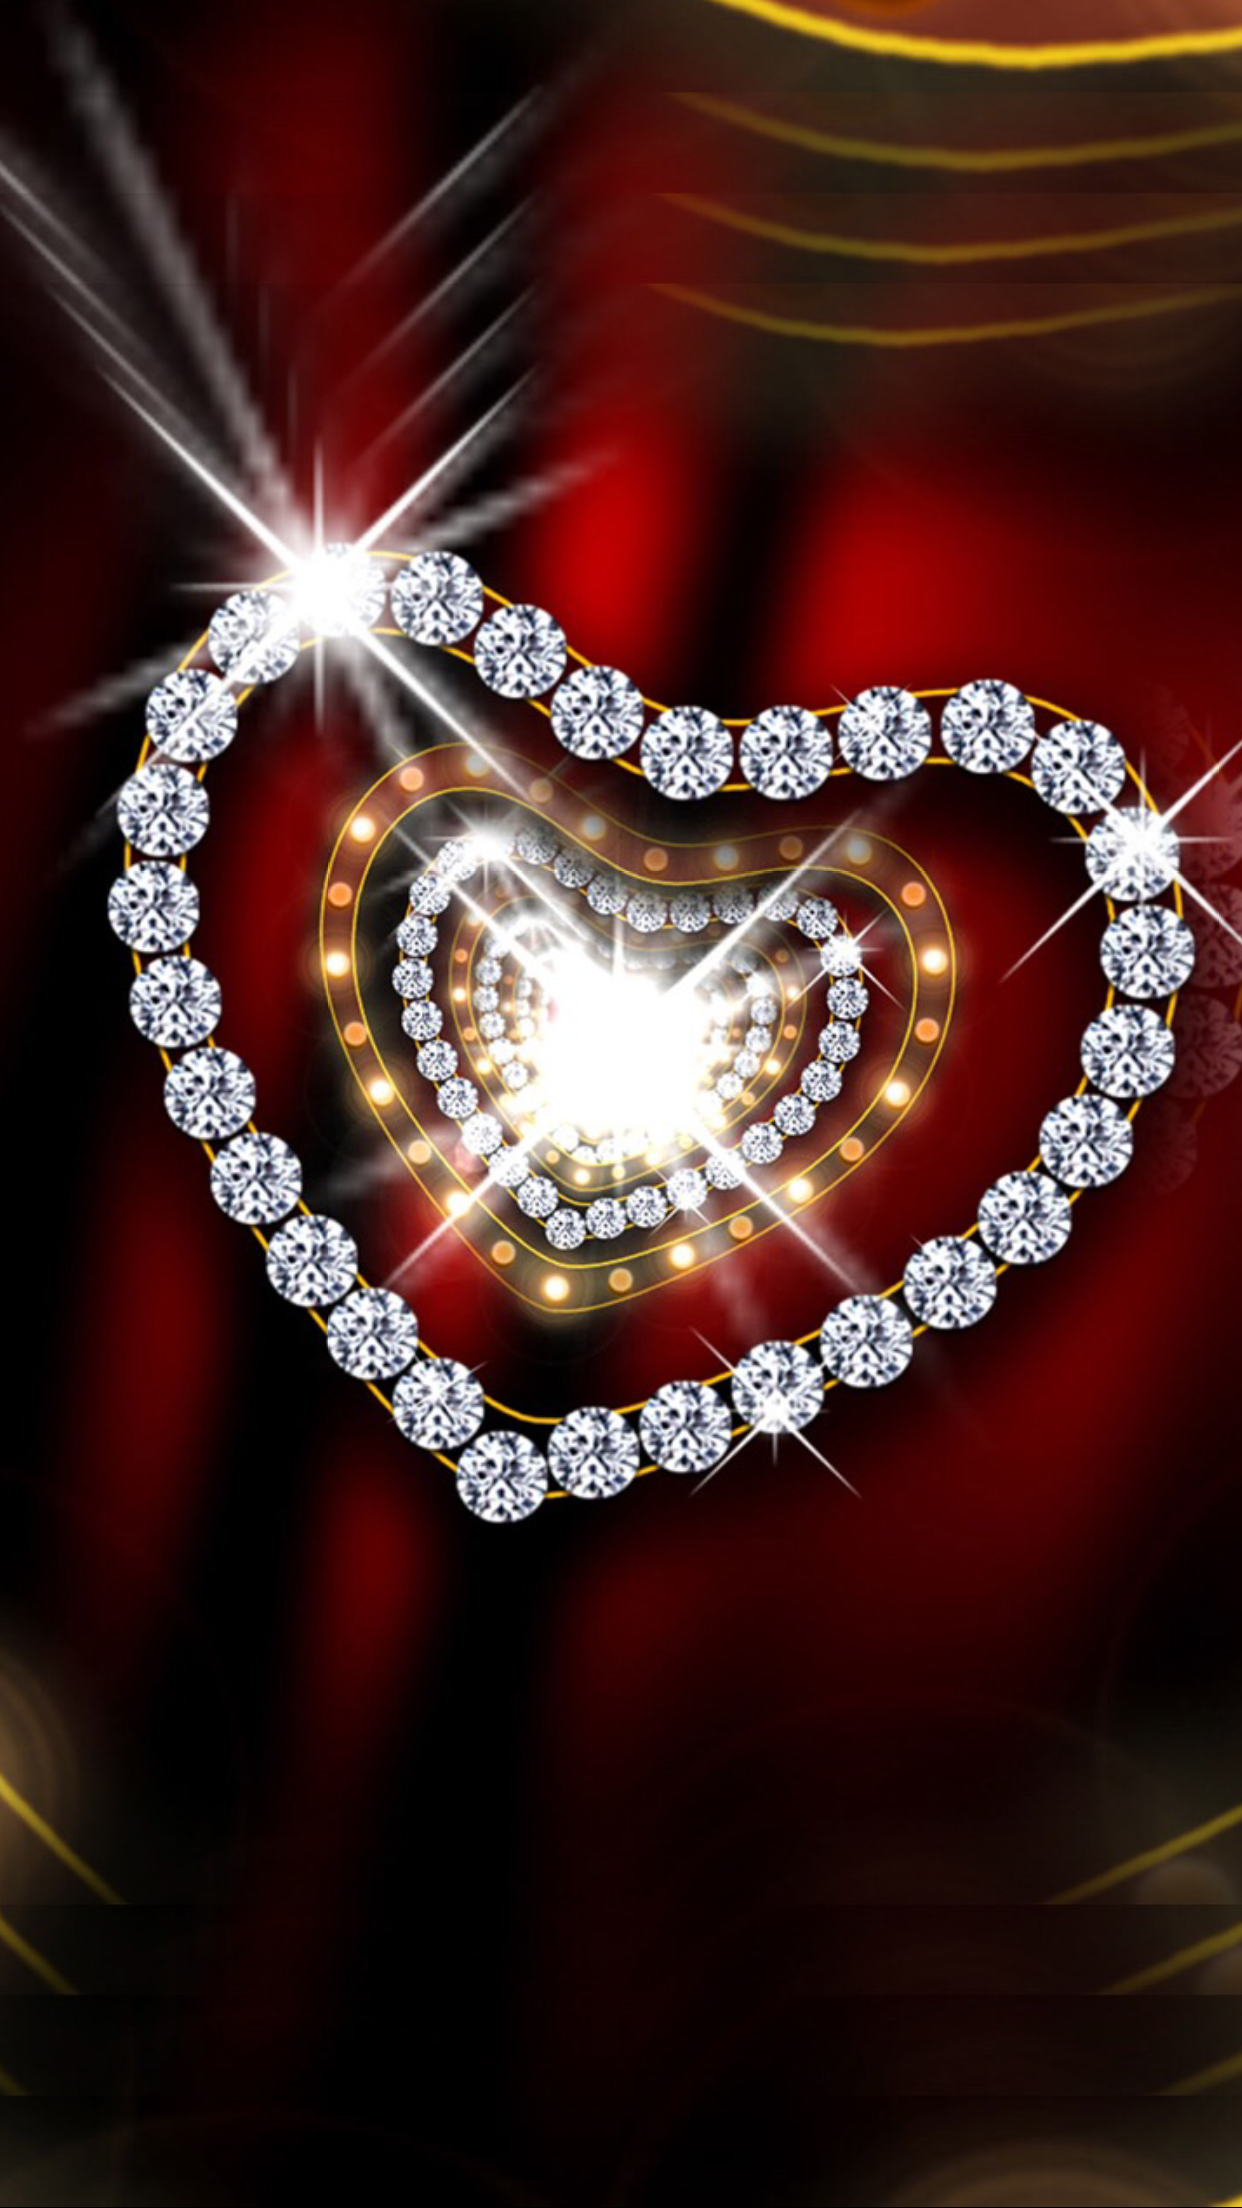 Pin by Rhonda Johnson on Heart of Hearts ♡♡♡ 2 ♡♡♡ Bling